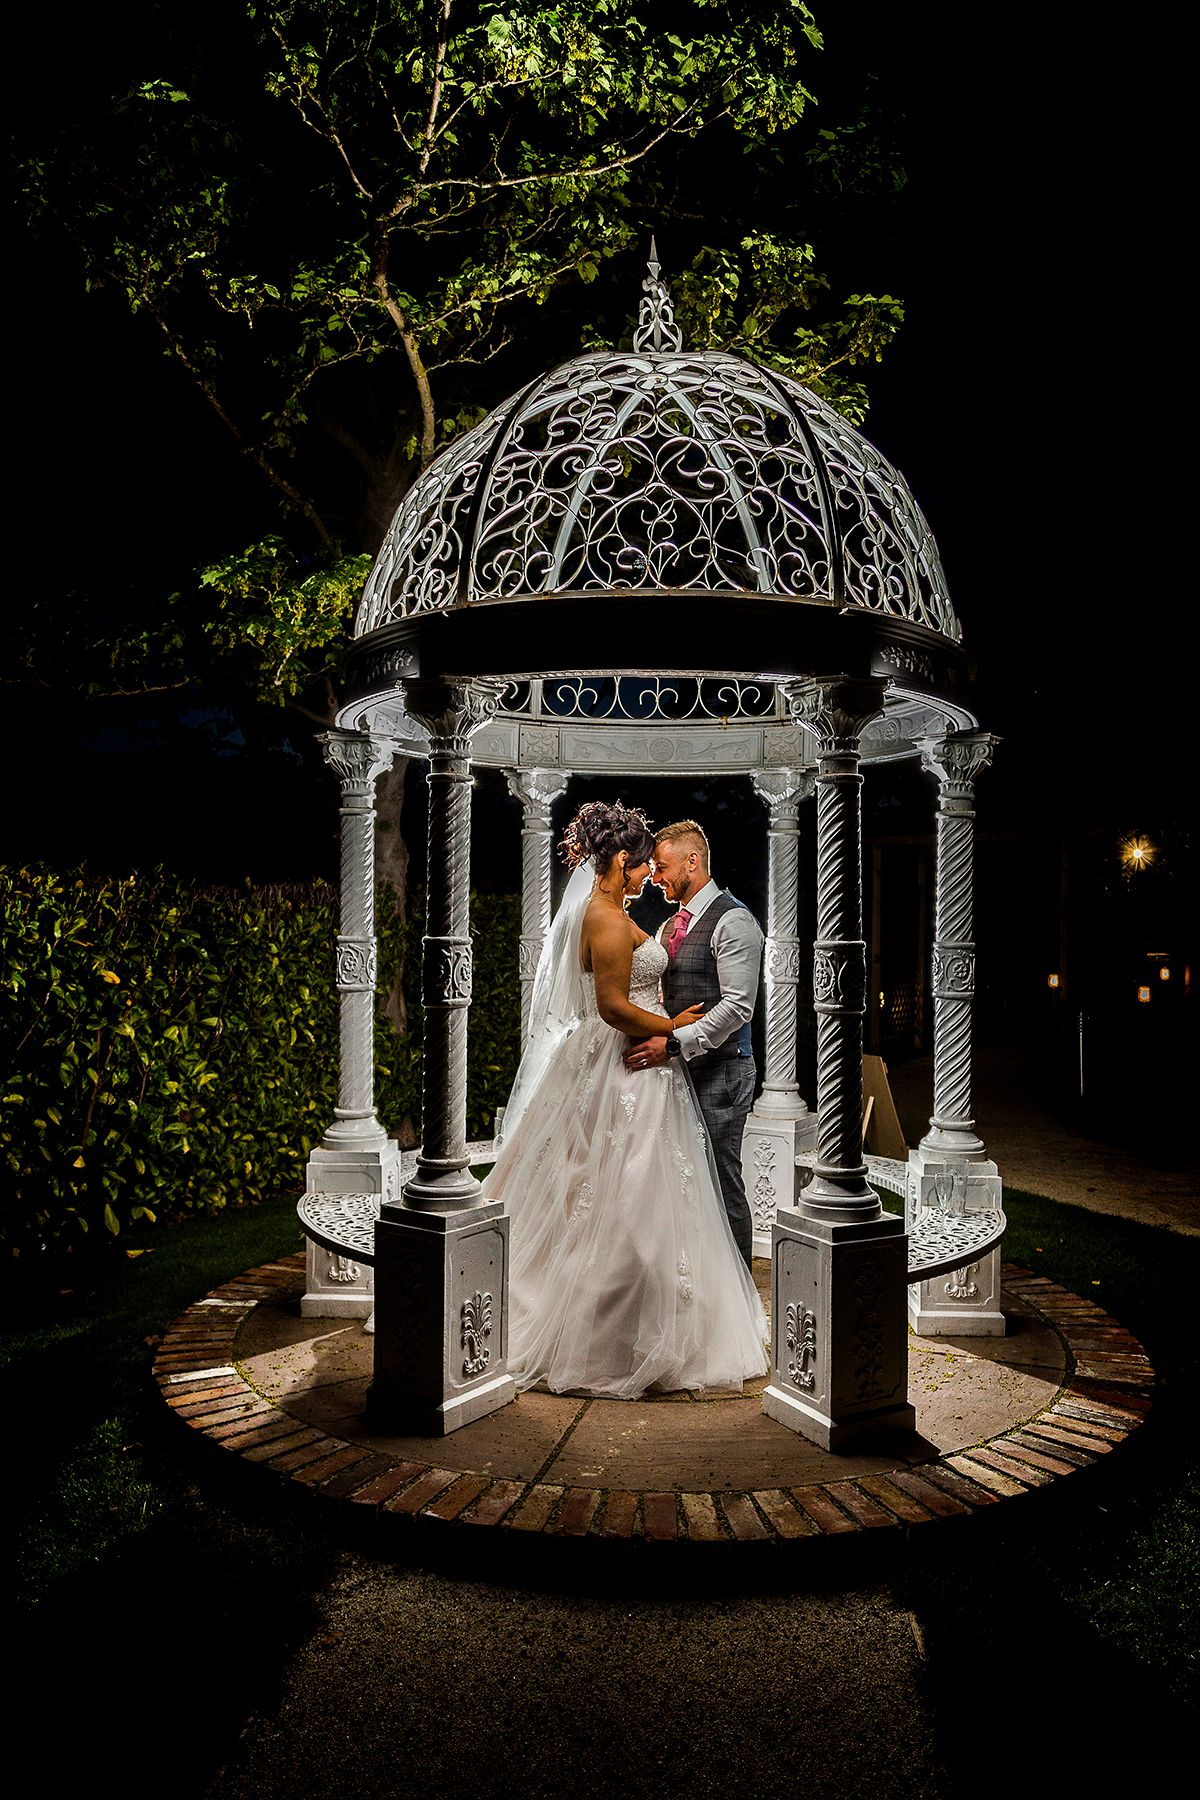 bride and groom under an ornate gazebo at the Nottinghamshire golf club